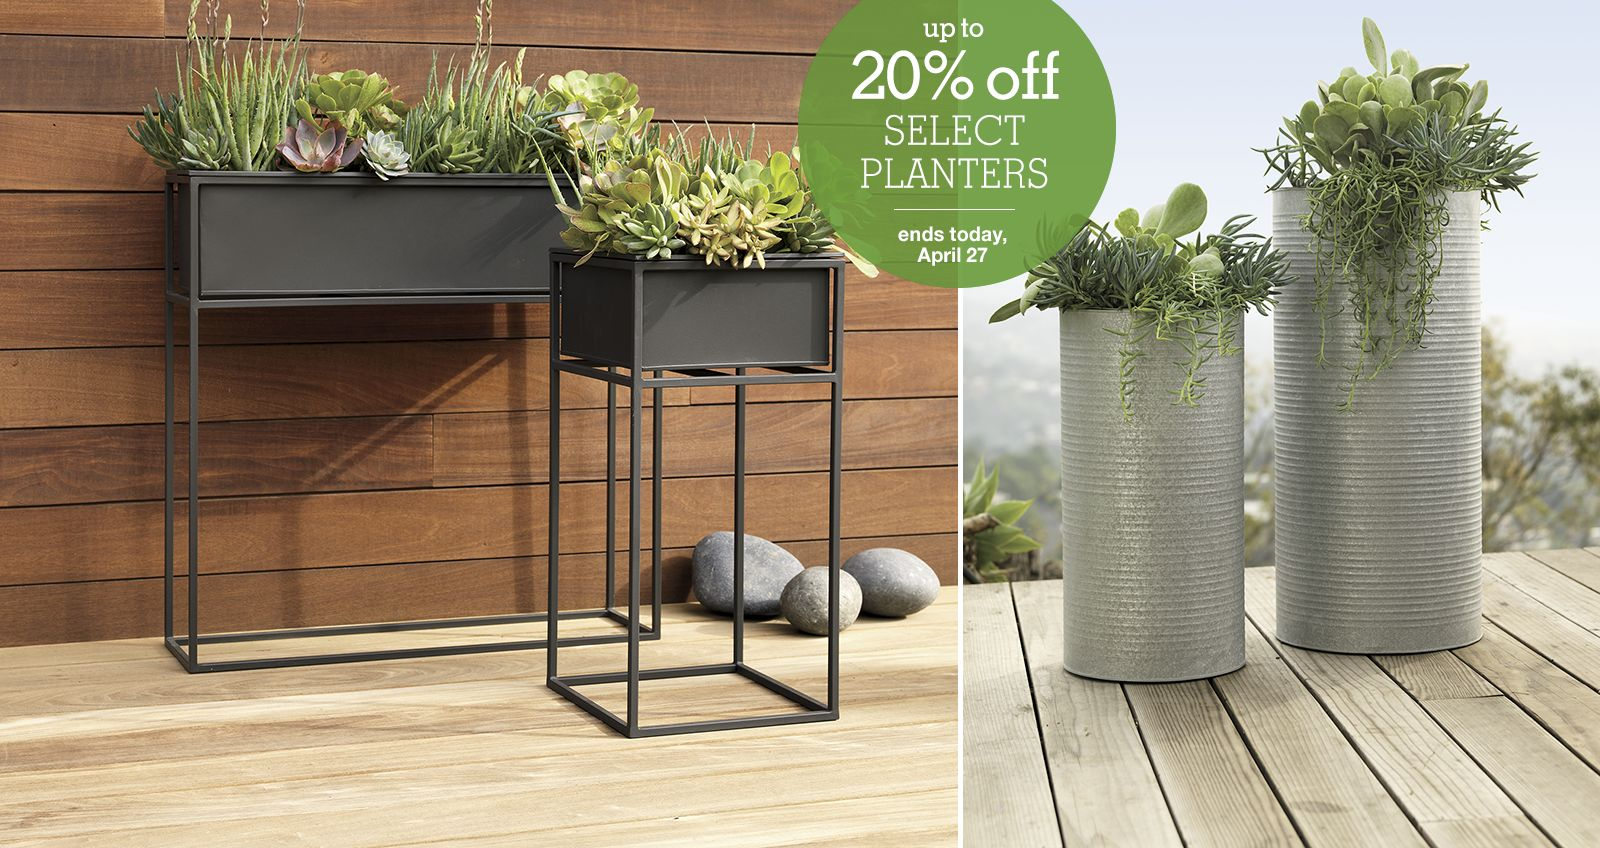 up to 20% off select planters. now through 4/27